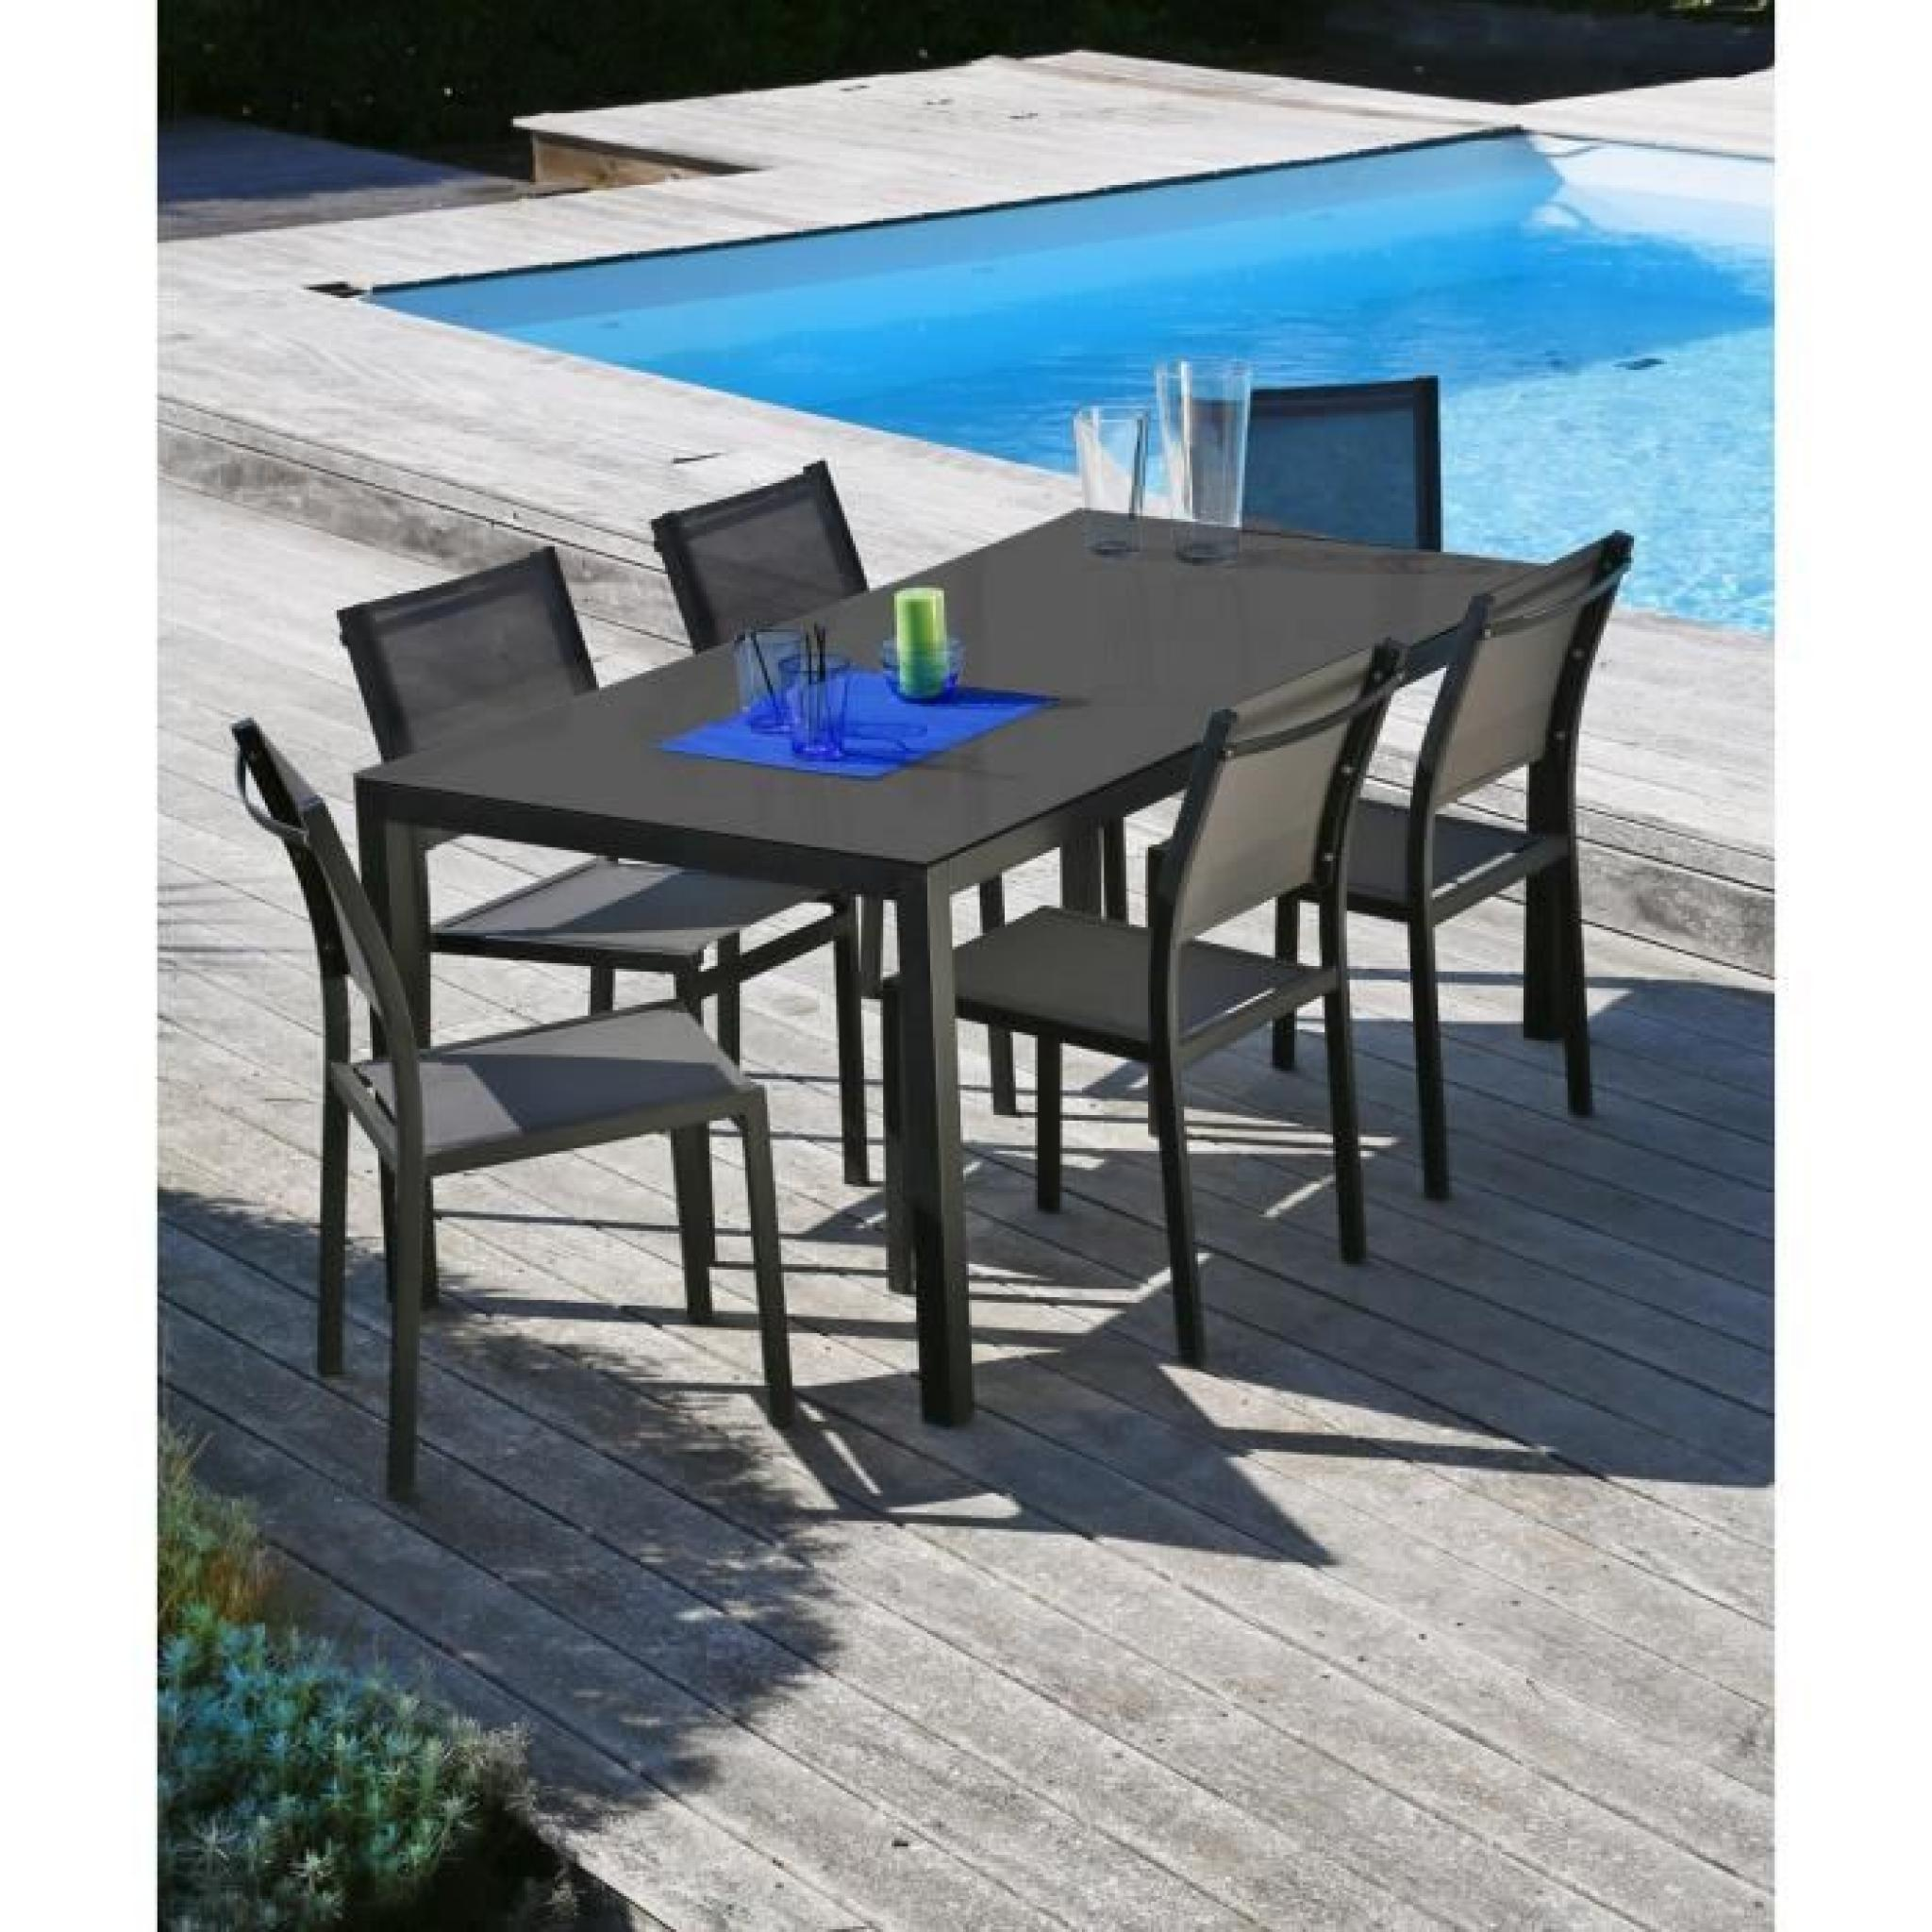 oman salon de jardin en aluminium 6 places noir achat vente salon de jardin en aluminium pas. Black Bedroom Furniture Sets. Home Design Ideas